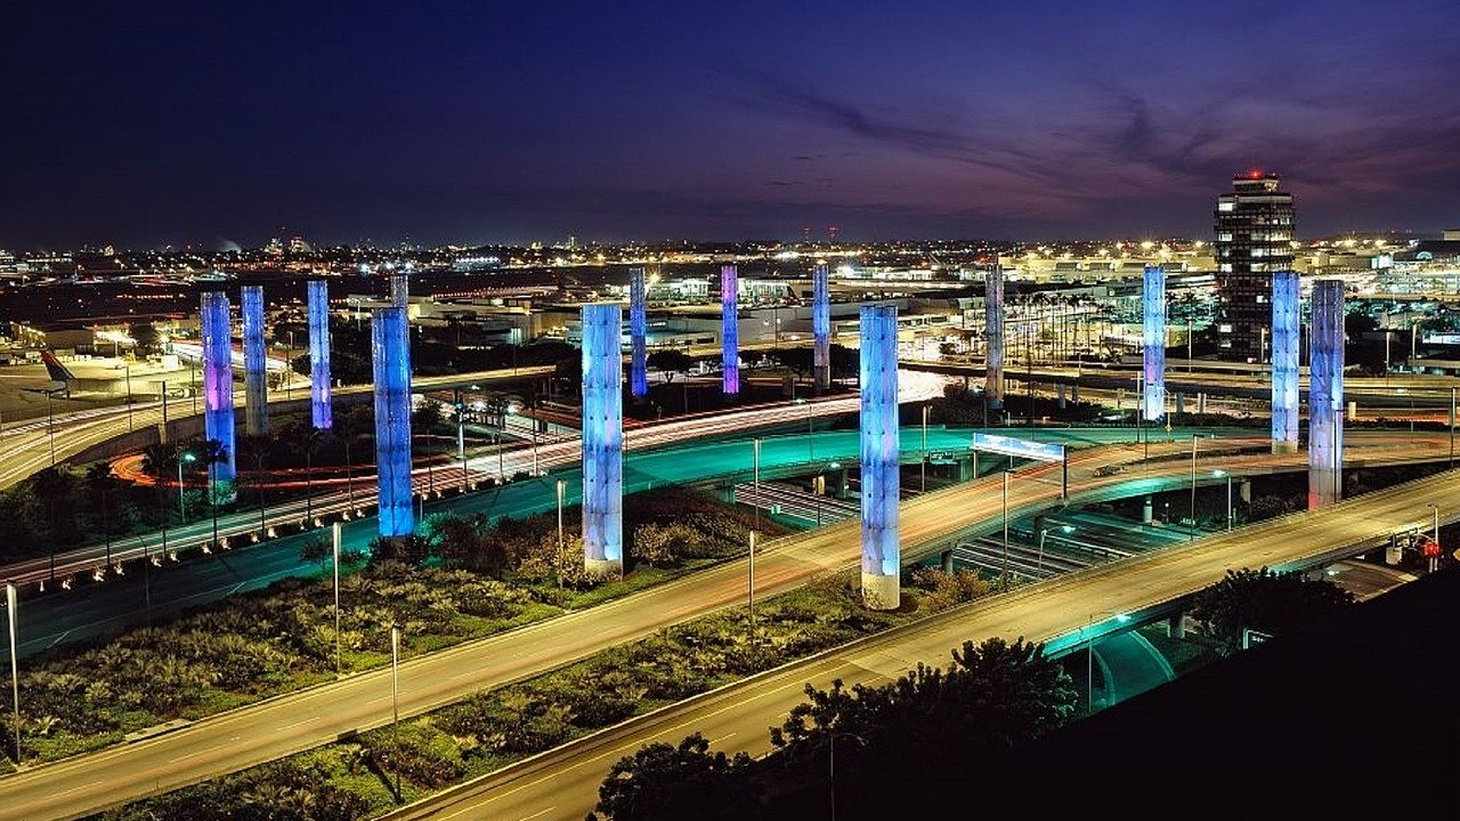 LAX airport.